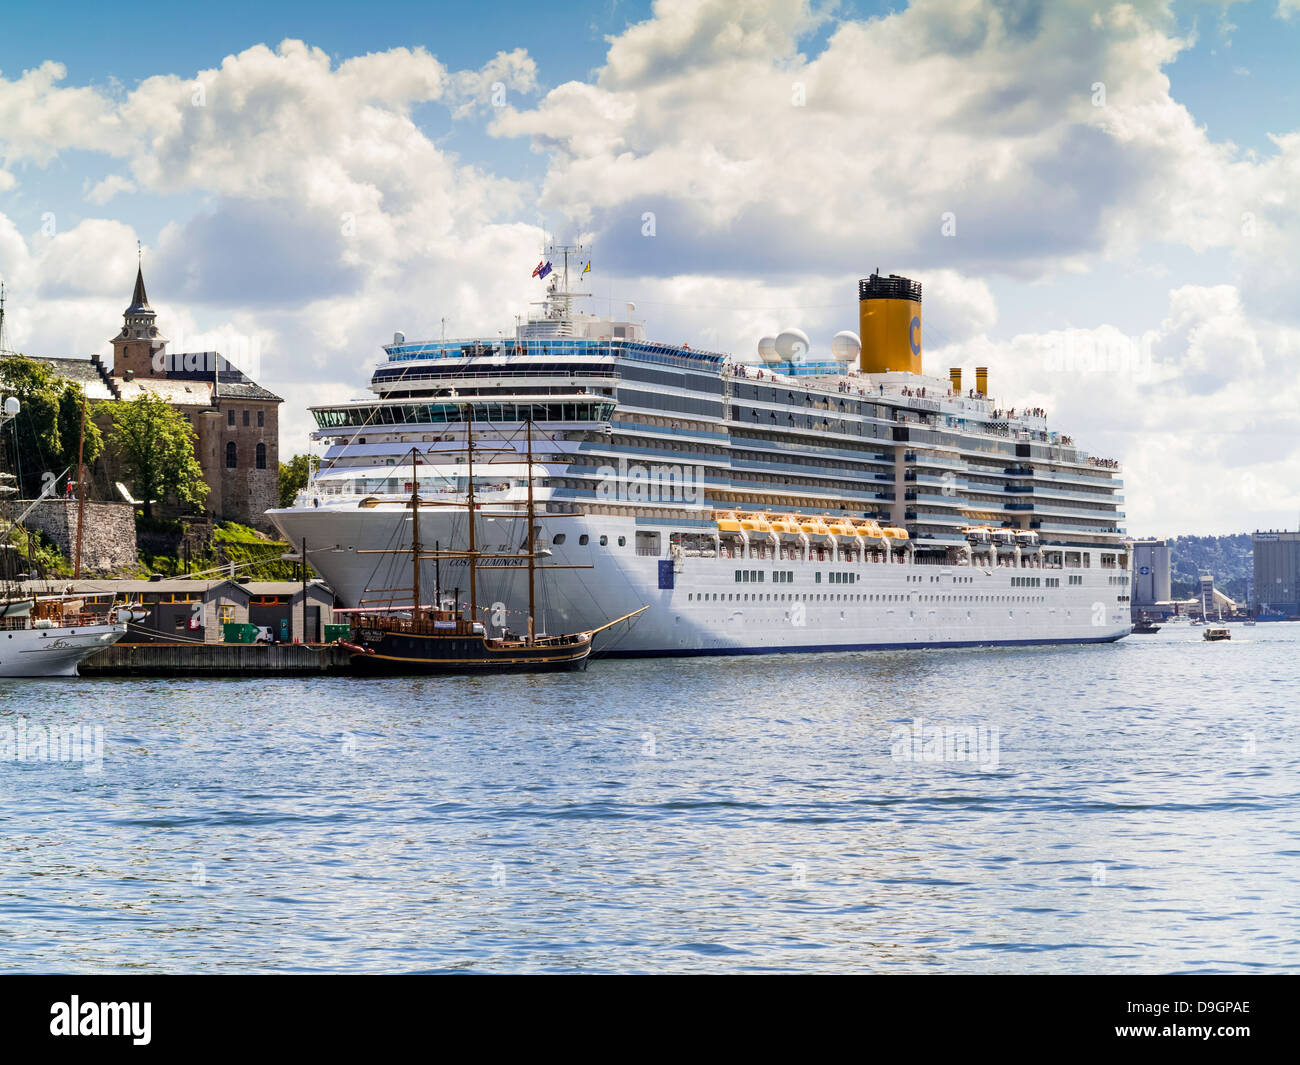 Cruise Ship The Costa Luminosa In Oslo Harbour Norway